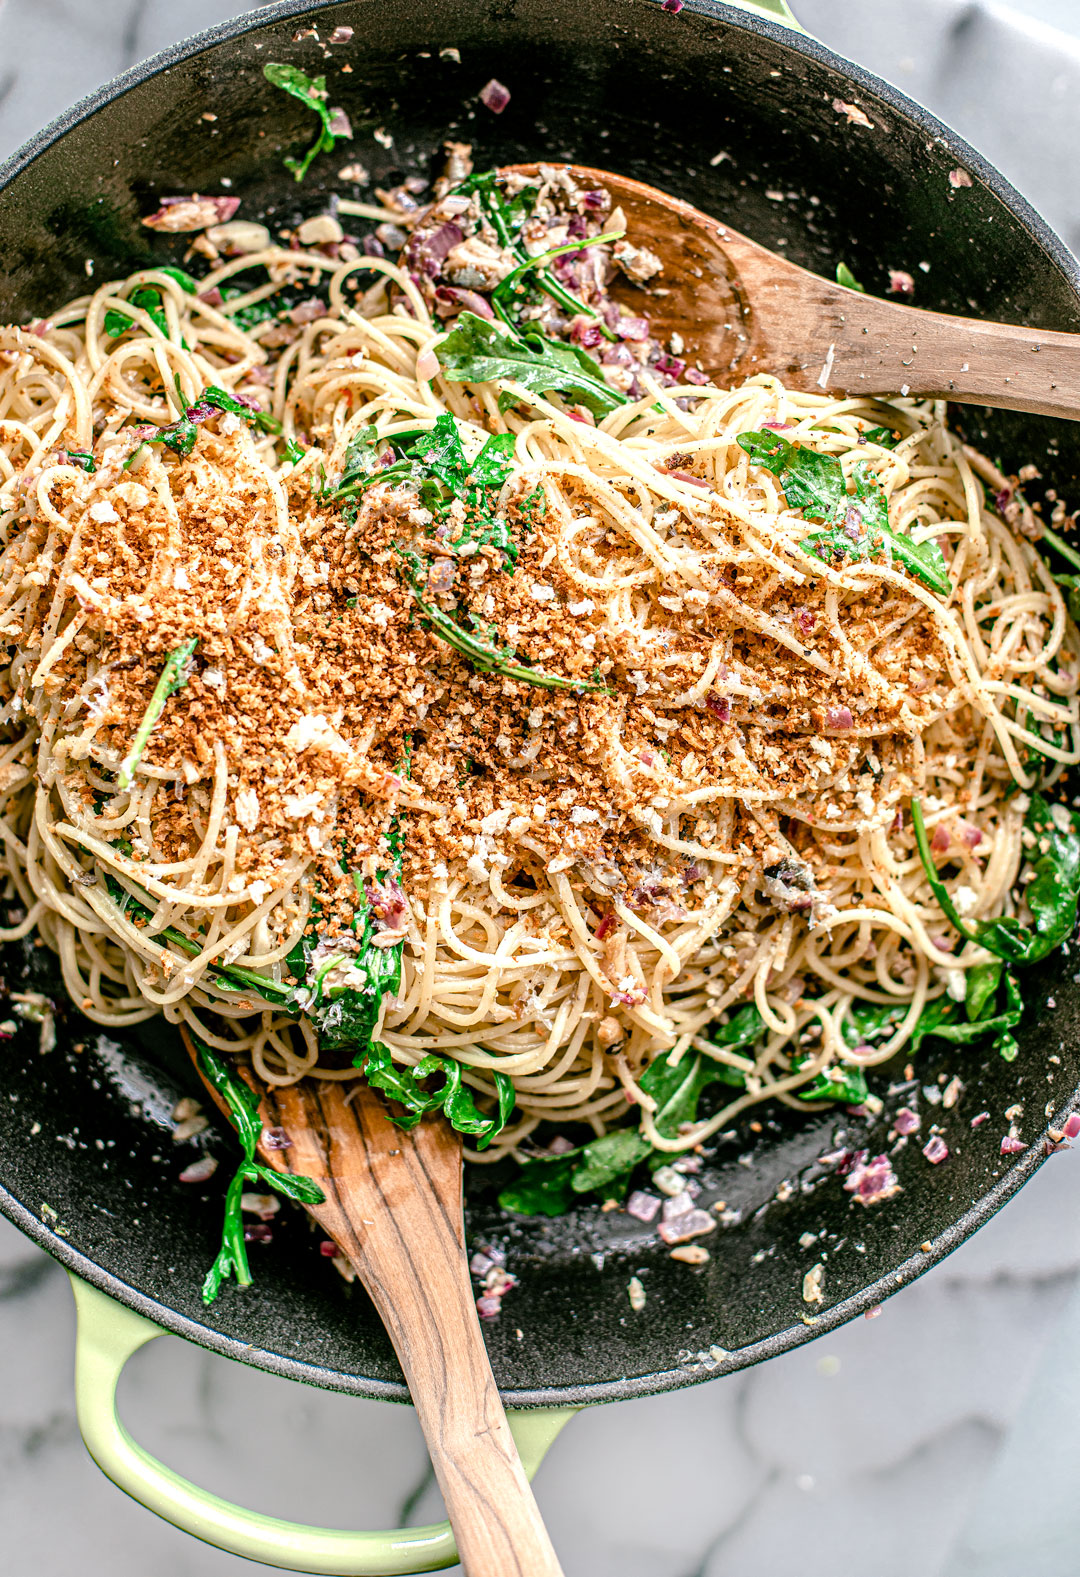 Pasta stired up in a pan with arugula and toasted breadcrumbs.